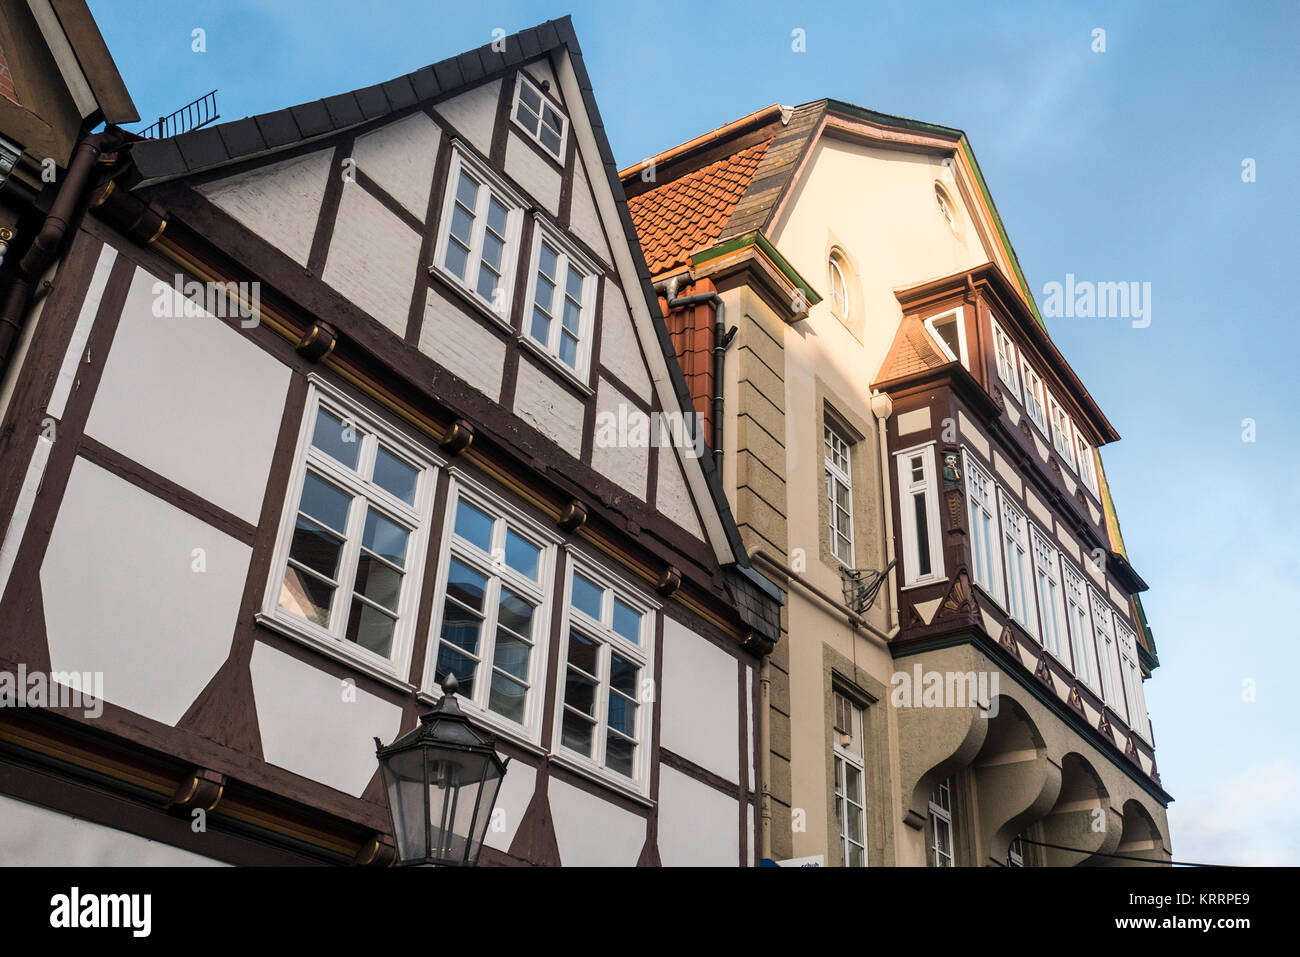 Traditional Timber Framed Buildings in Celle Germany Stock Photo ...